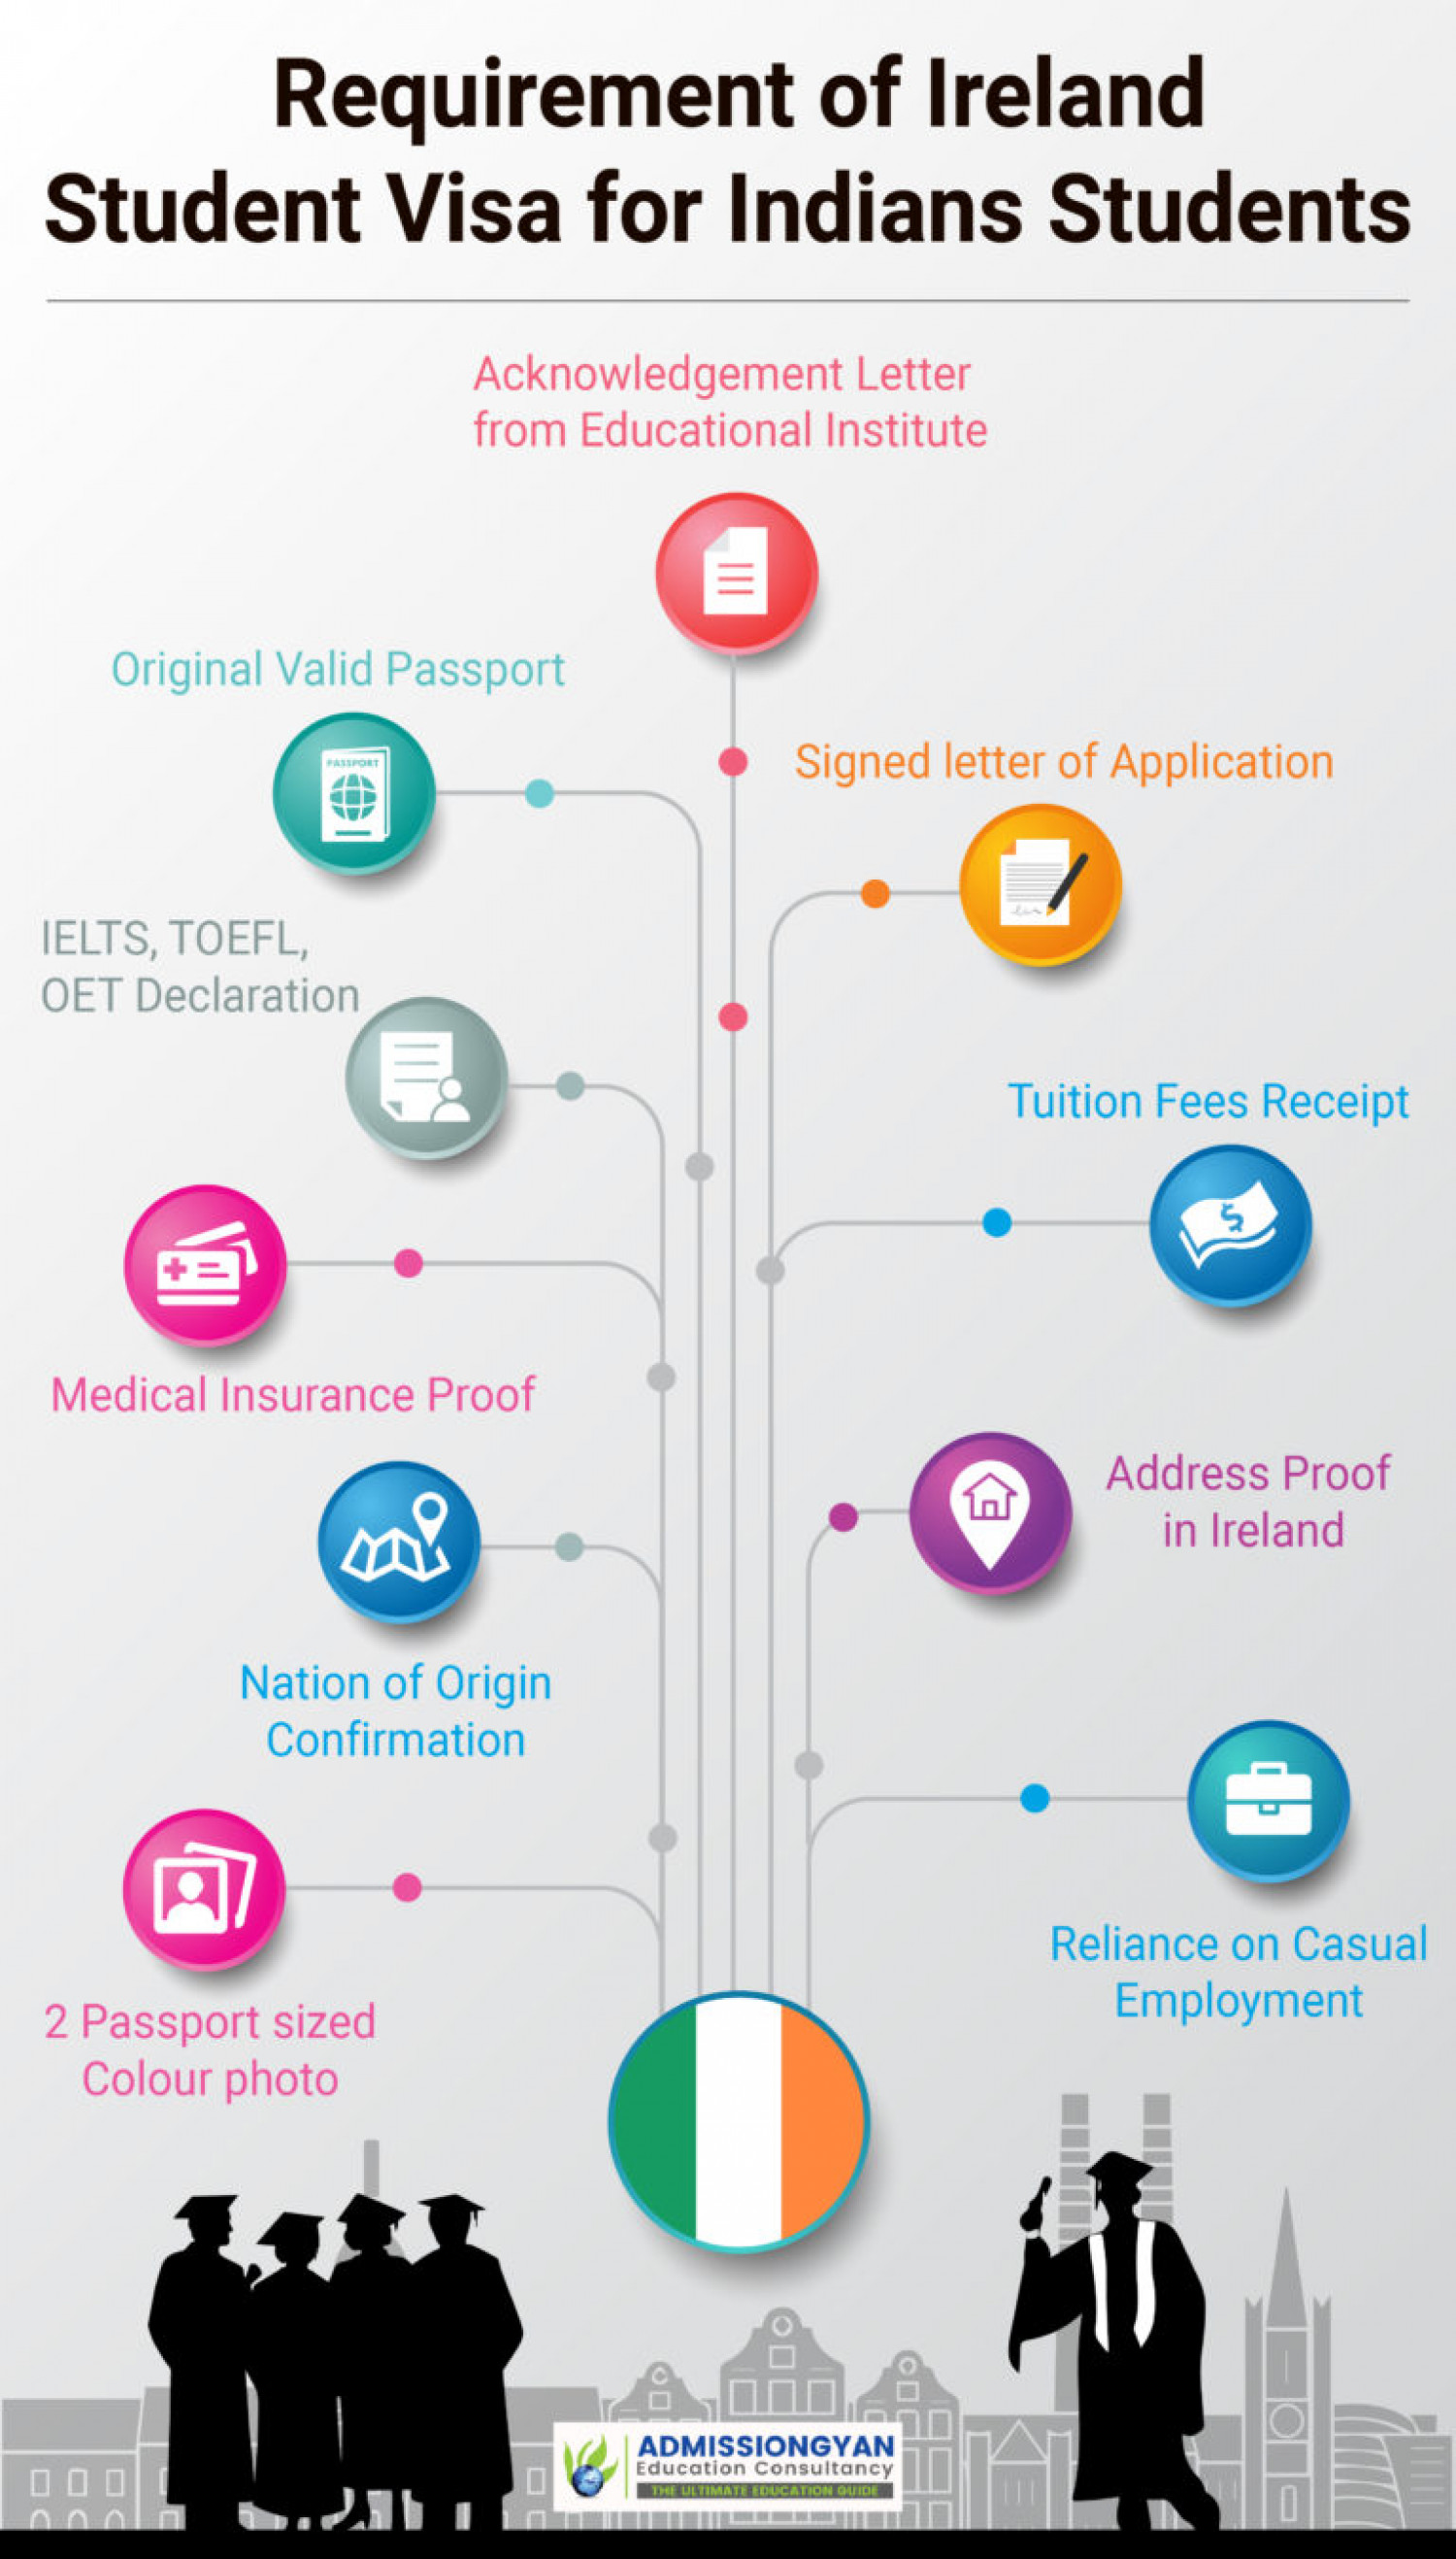 STUDENT VISA REQUIREMENTS IN IRELAND FOR INDIAN STUDENTS Infographic